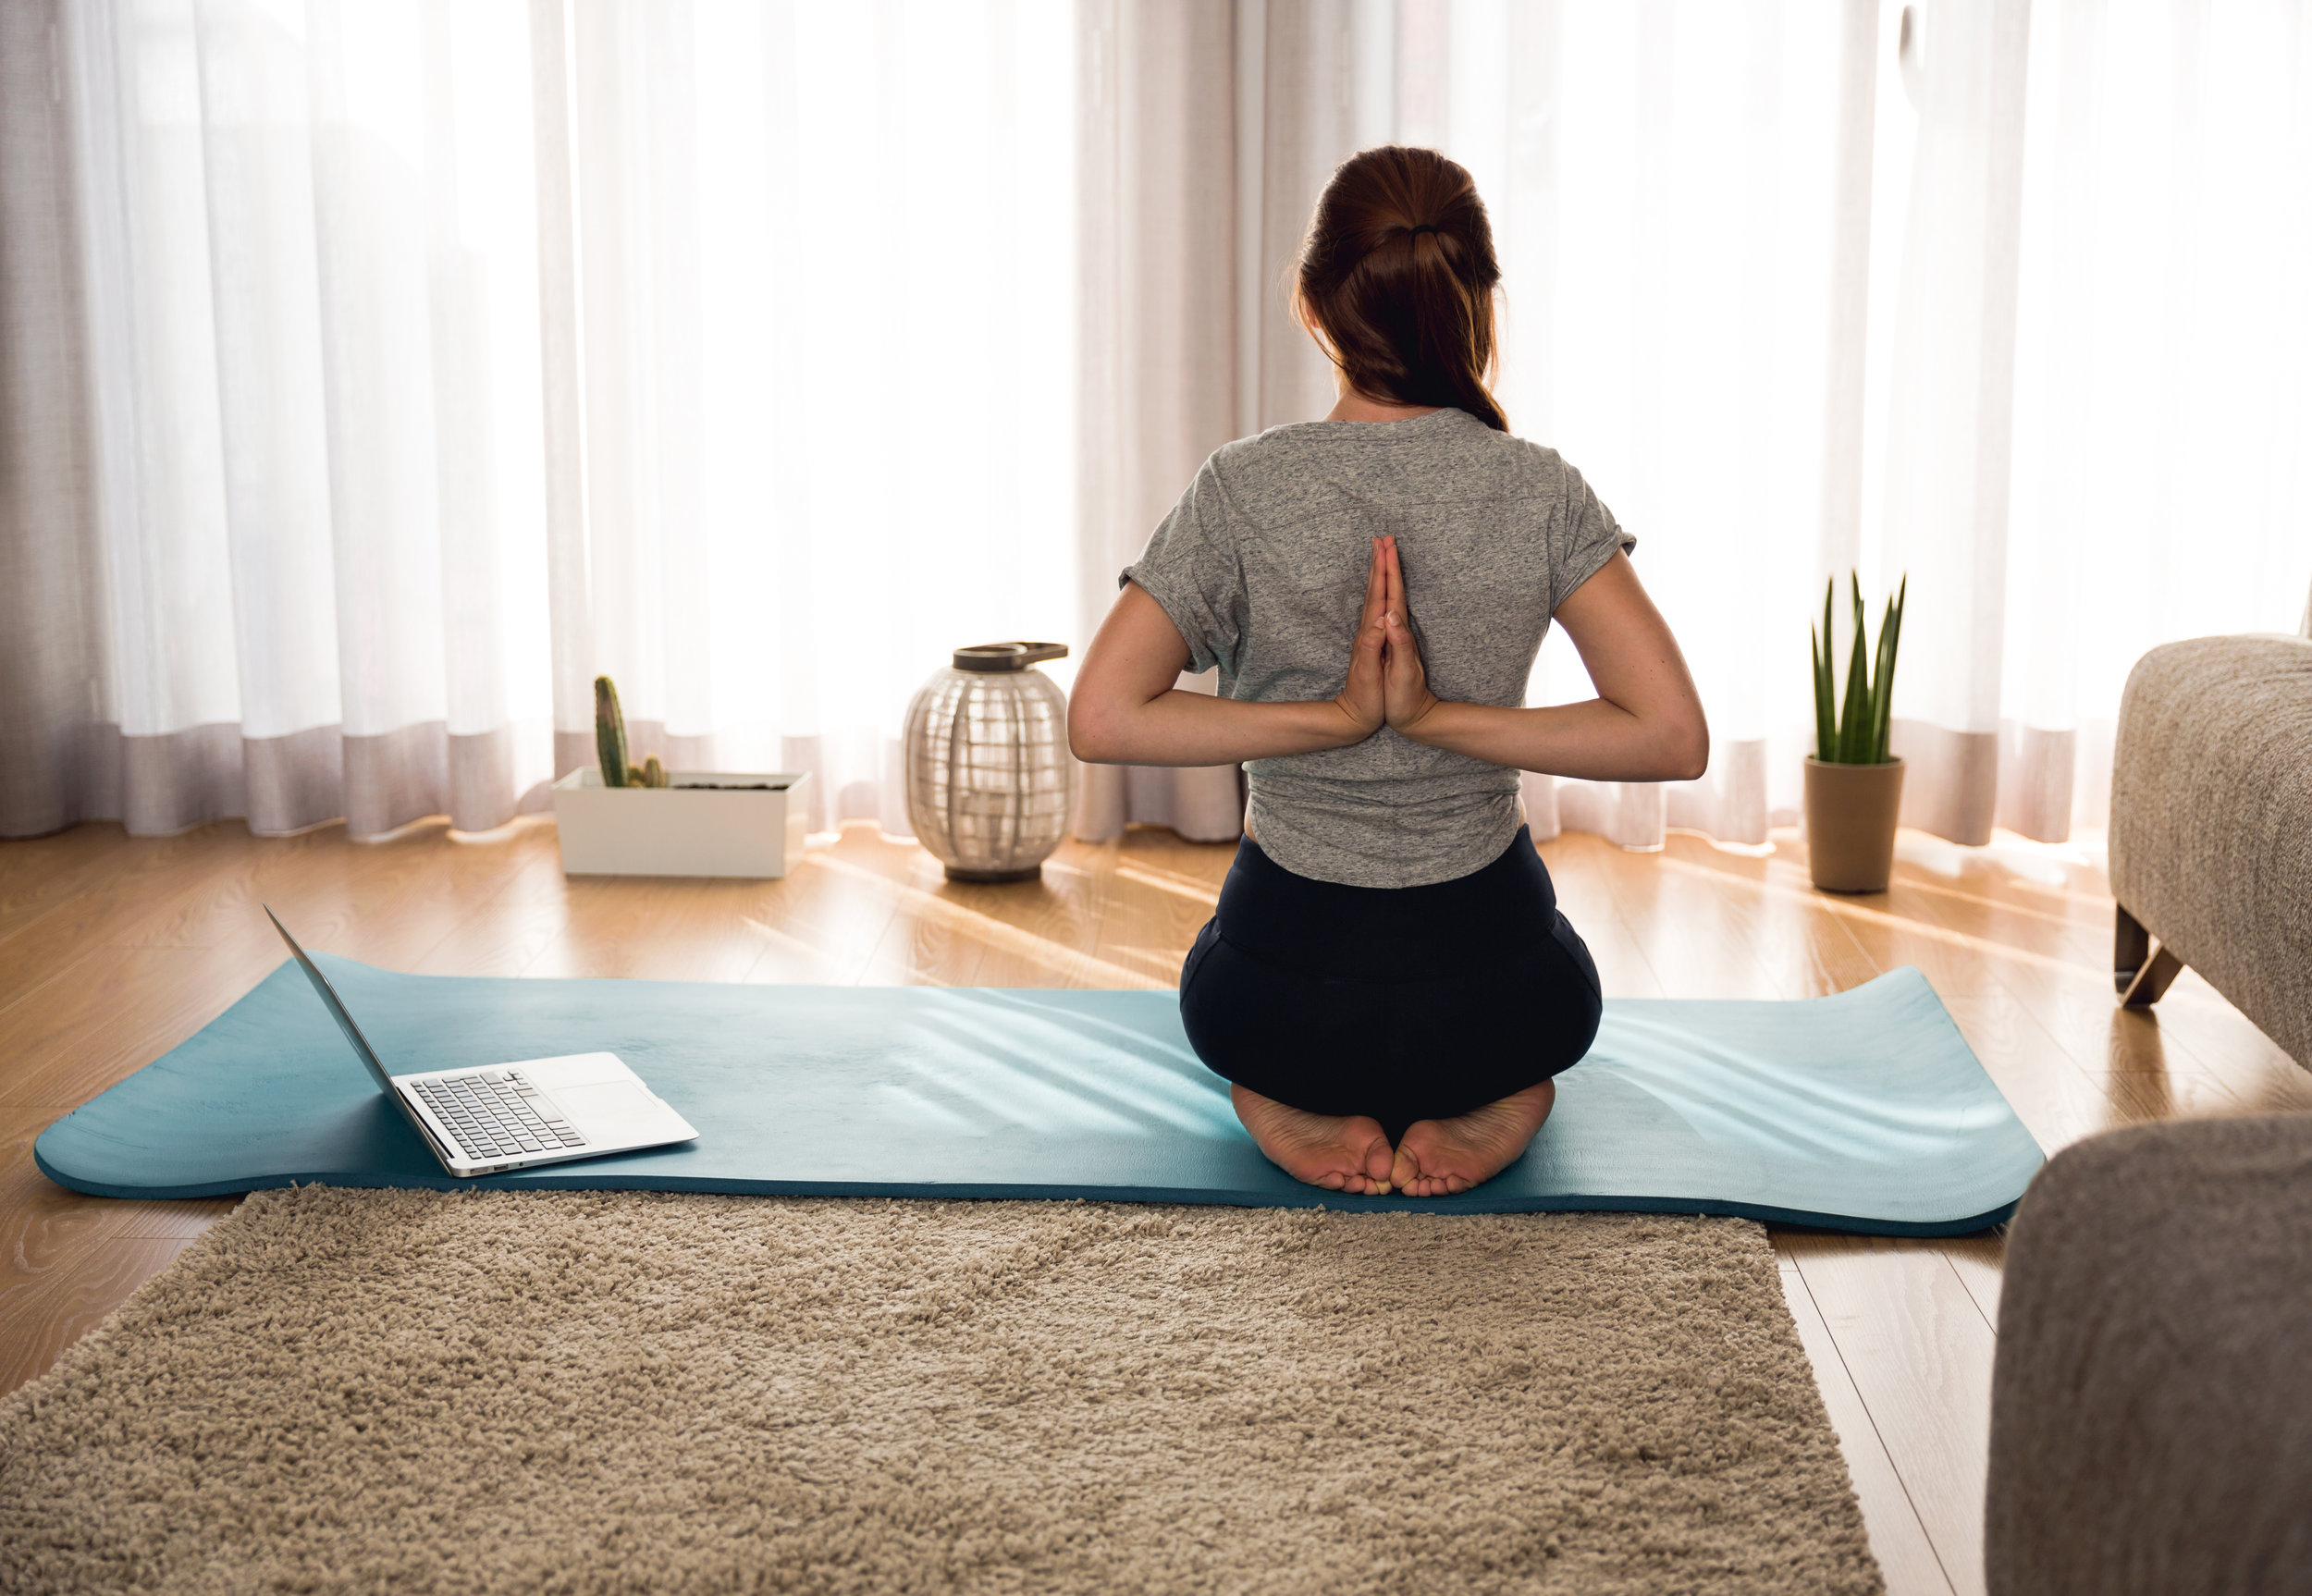 its-time-for-some-yoga-PHHMWYG.jpg